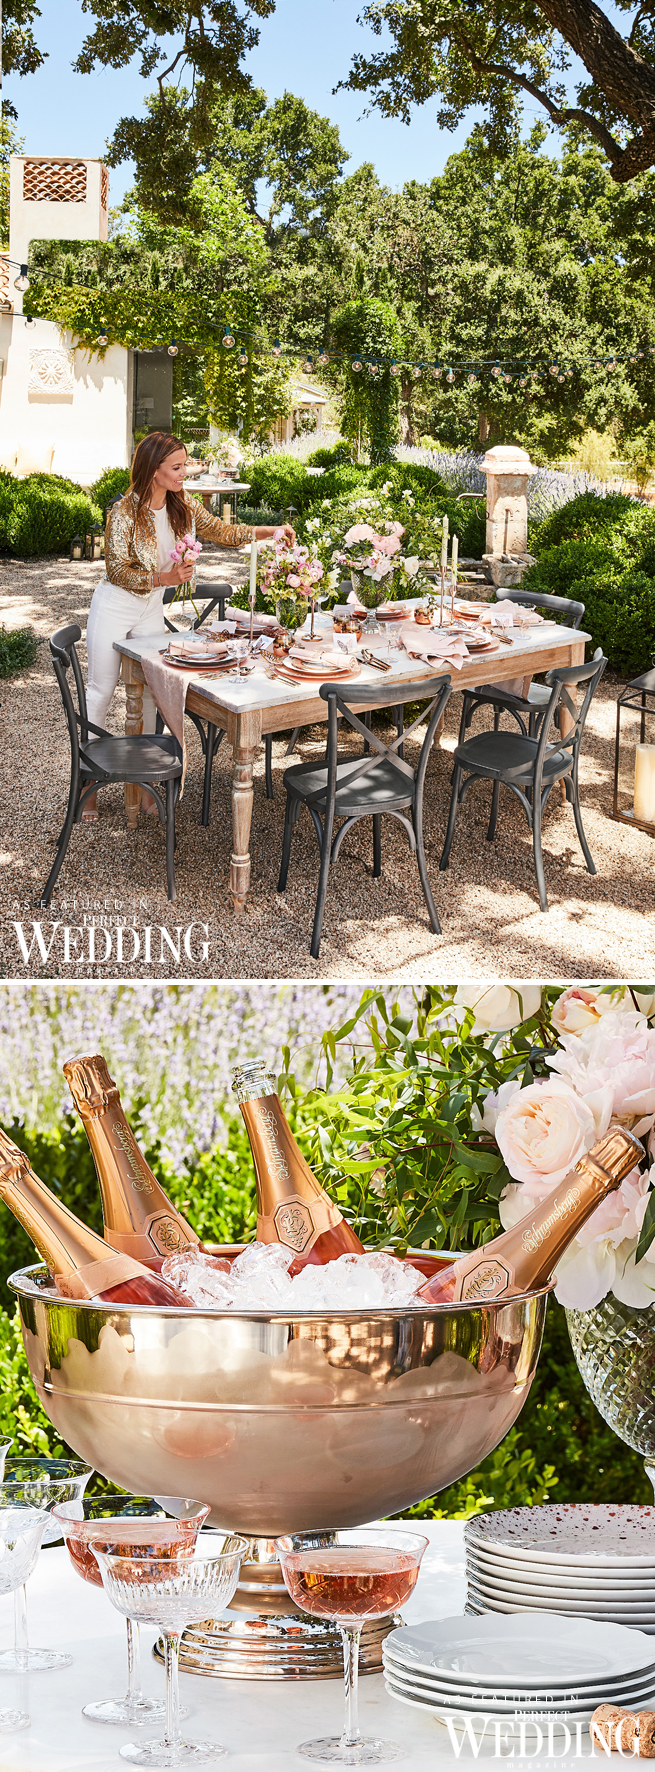 Bridal Registry, Monique Lhuillier, New York Bridal Market, Perfect Wedding Magazine, Perfect Wedding Blog, Monique Lhuillier for Pottery Barn, Wedding Registry